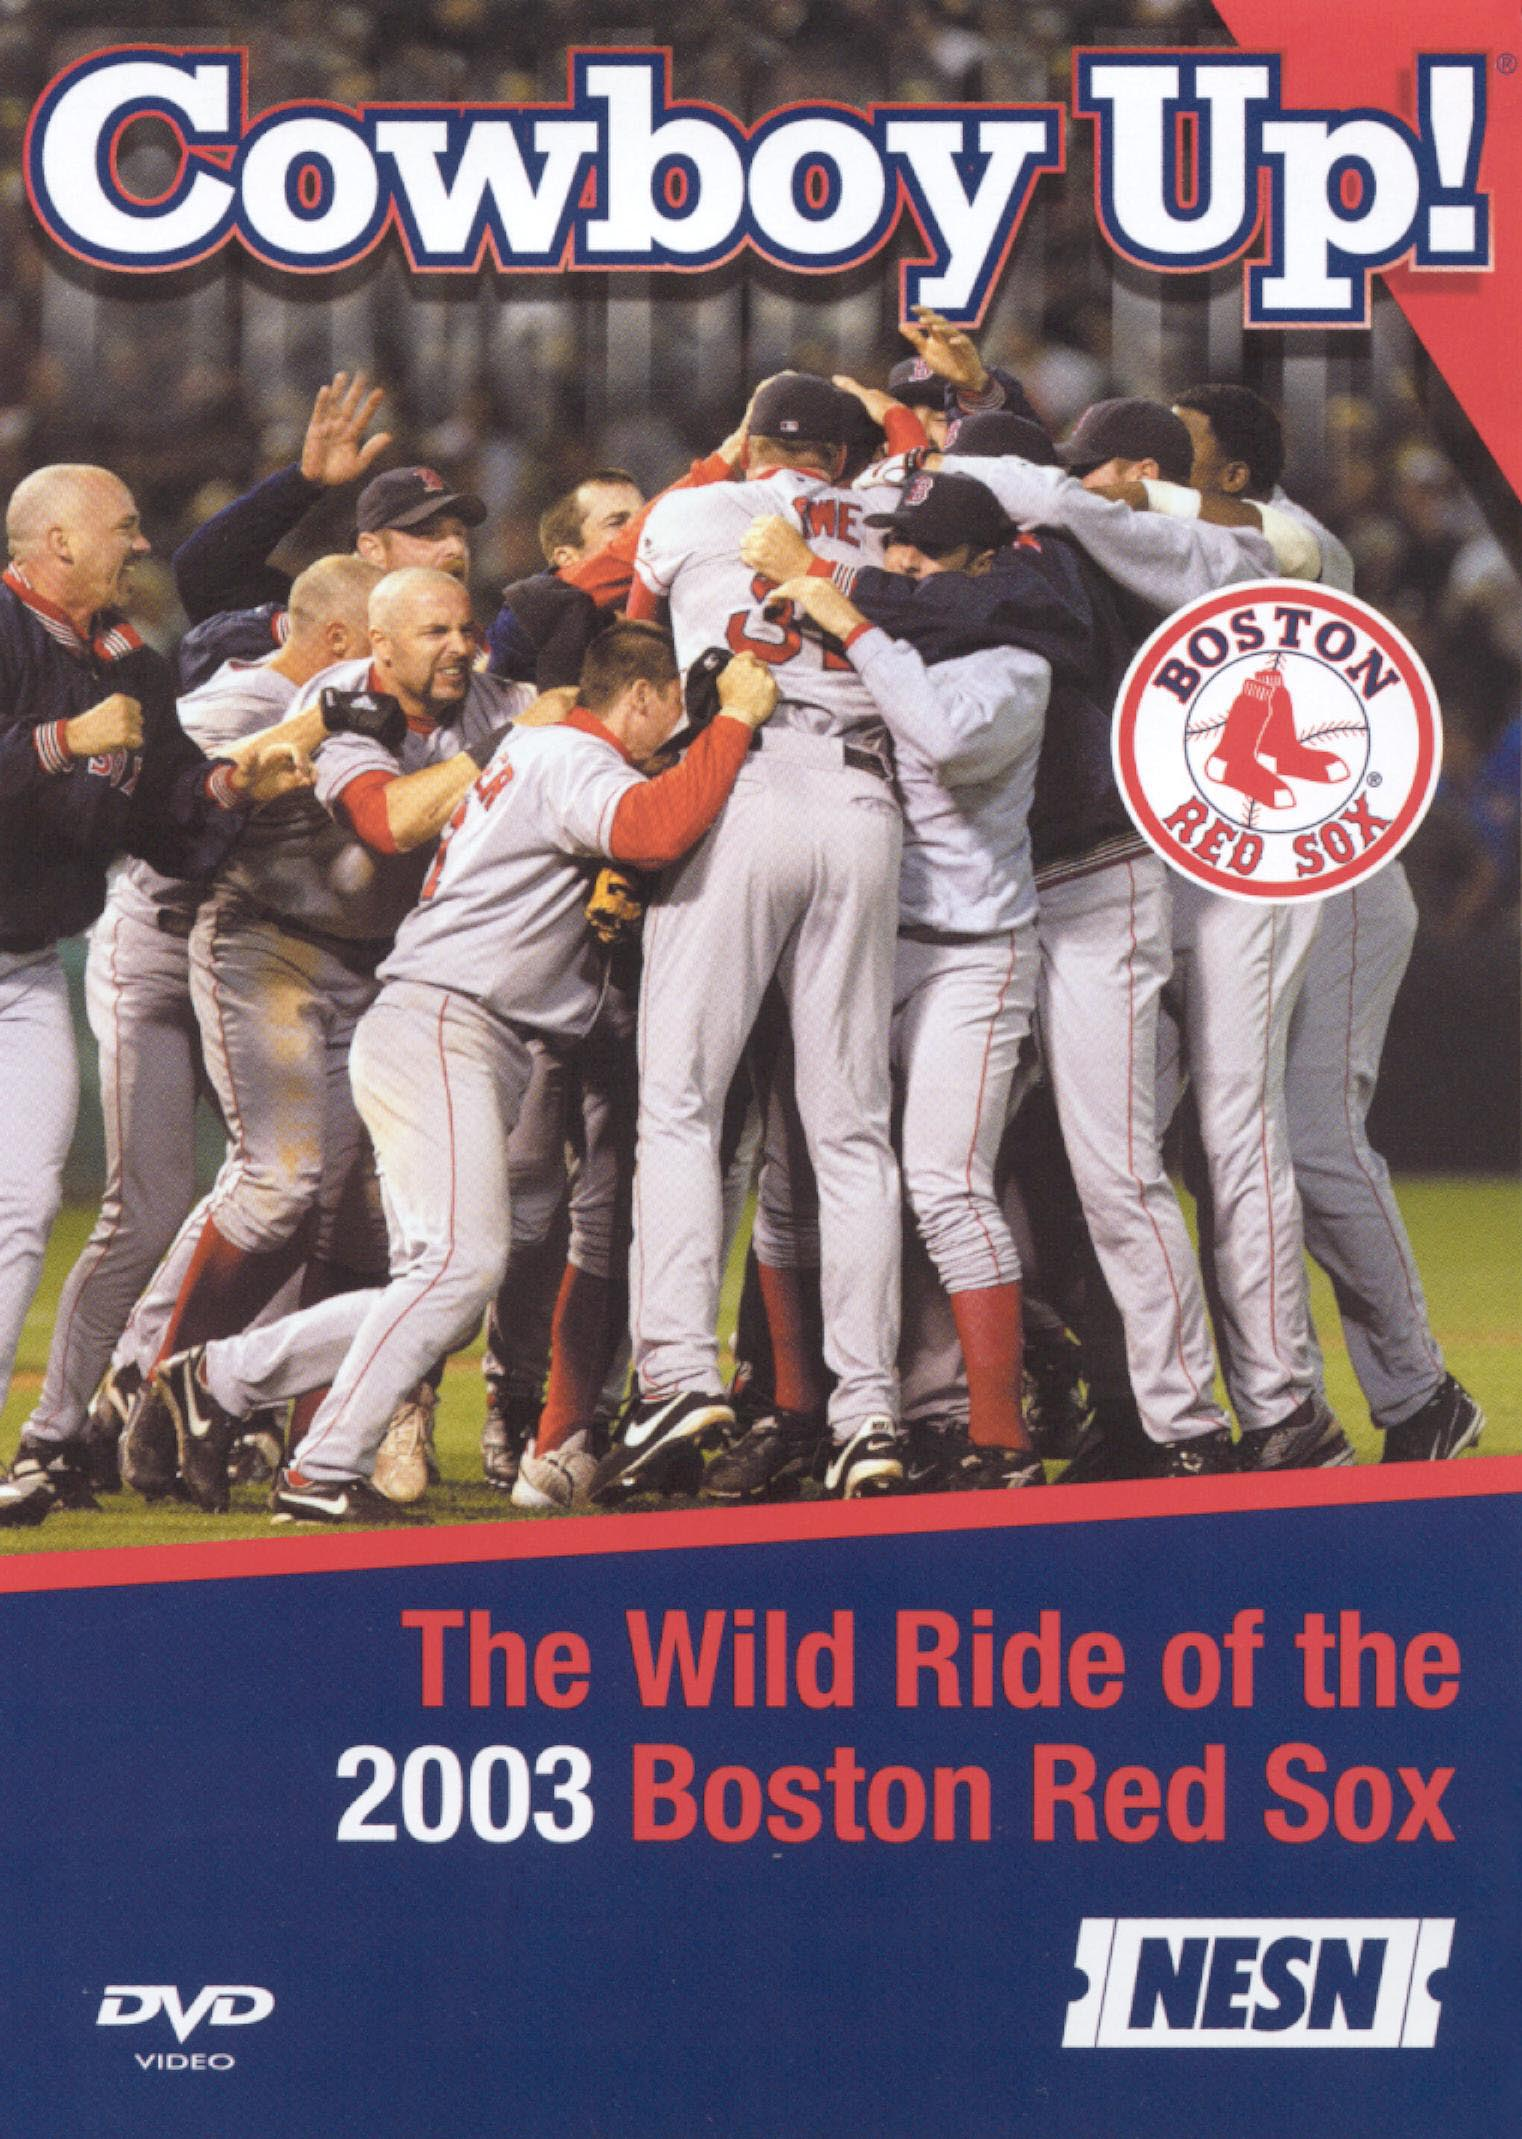 Cowboy Up! The Wild Ride of the 2003 Boston Red Sox